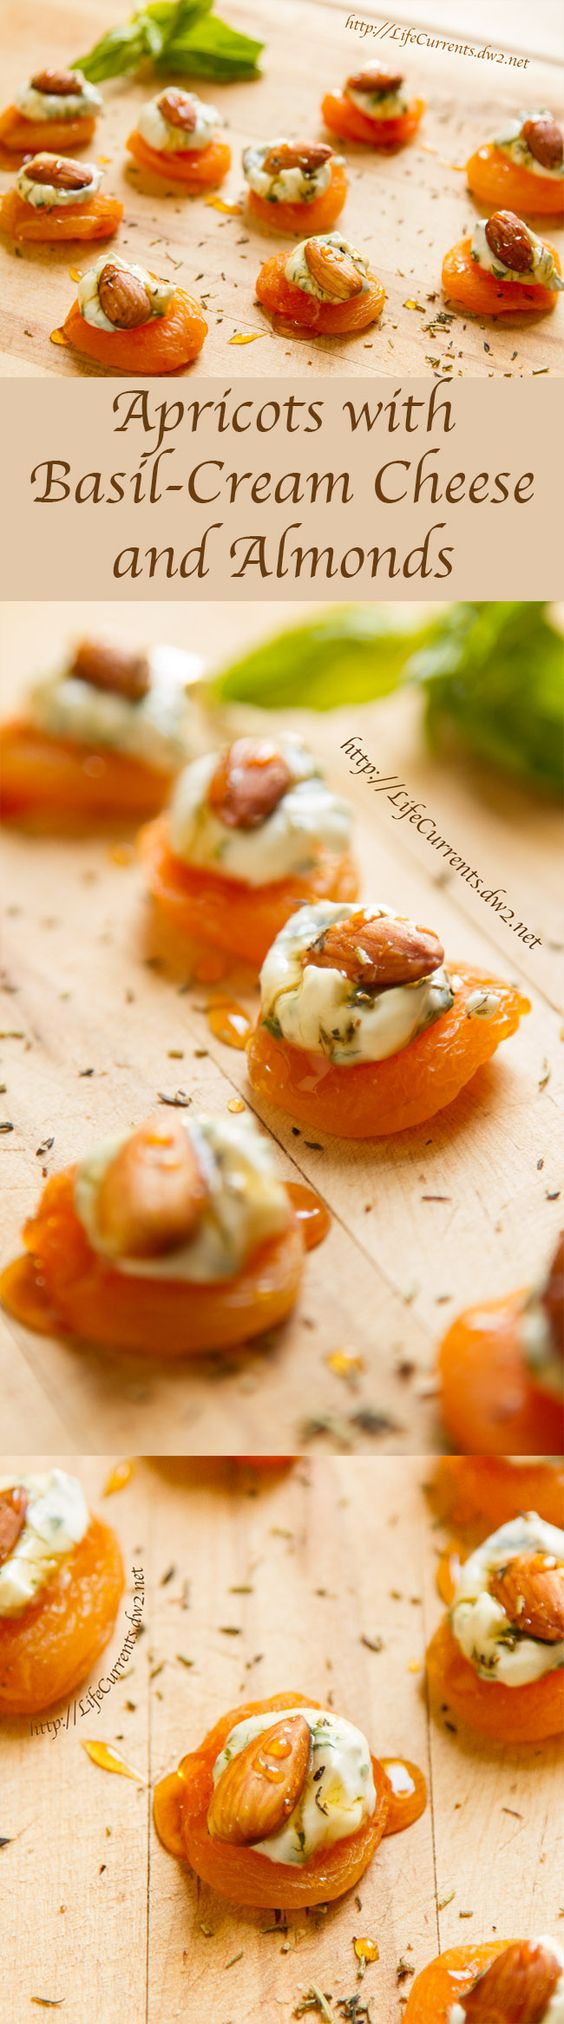 Apricots with Basil-Cream Cheese and Almonds | Recipe | Almonds ...